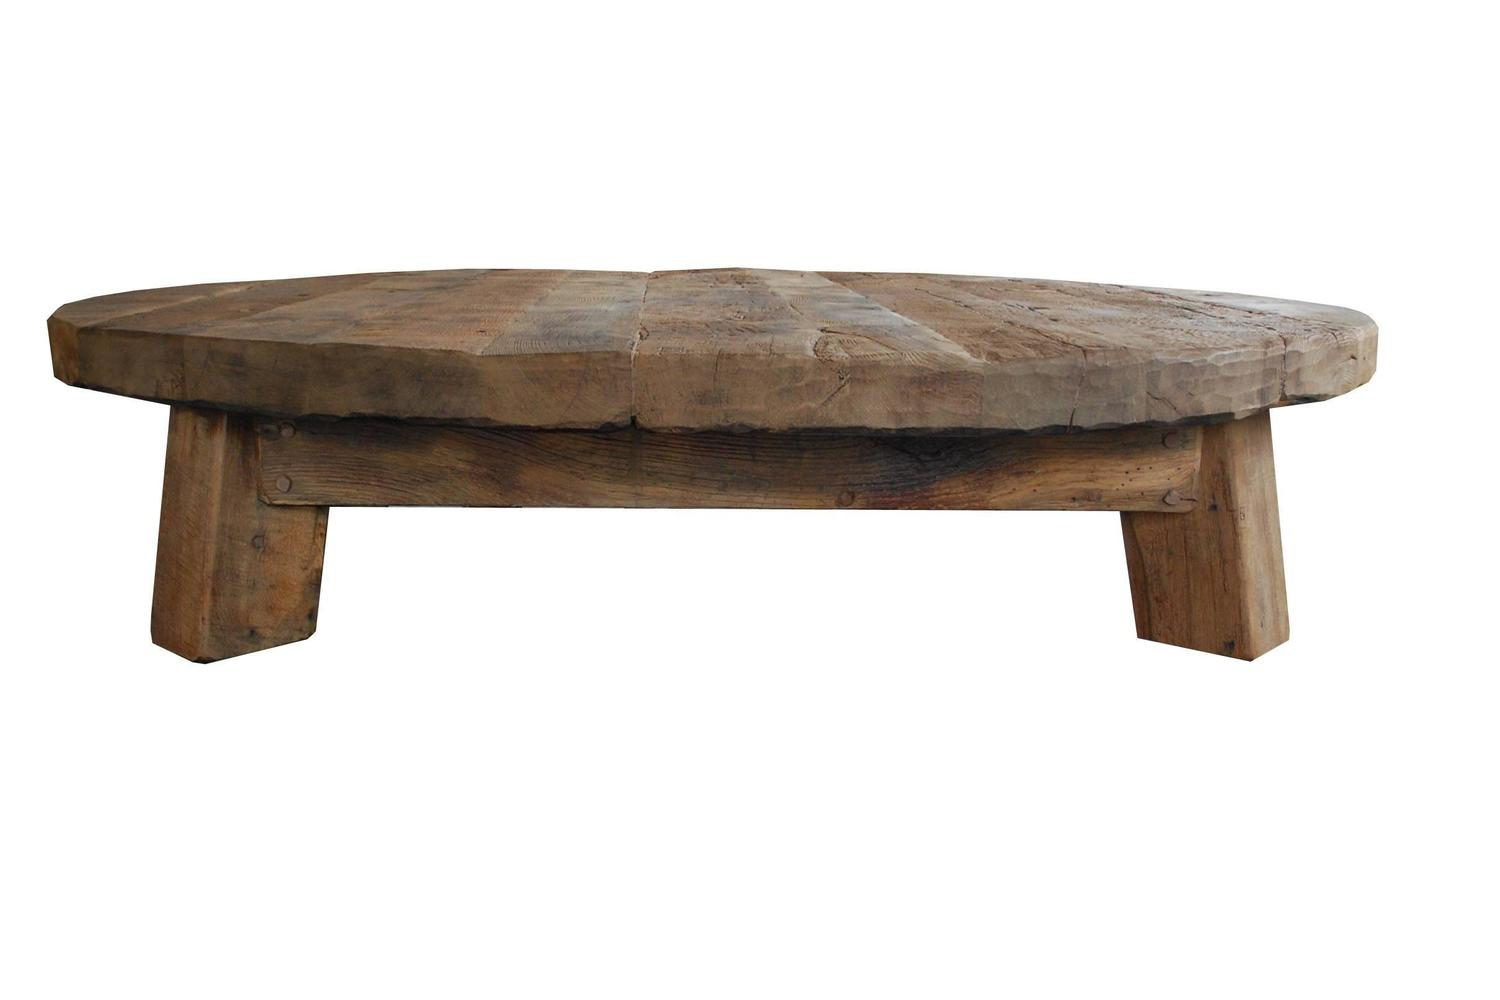 Extremely Large And Heavy Oakwood Coffee Table Low Table For Sale At 1stdibs